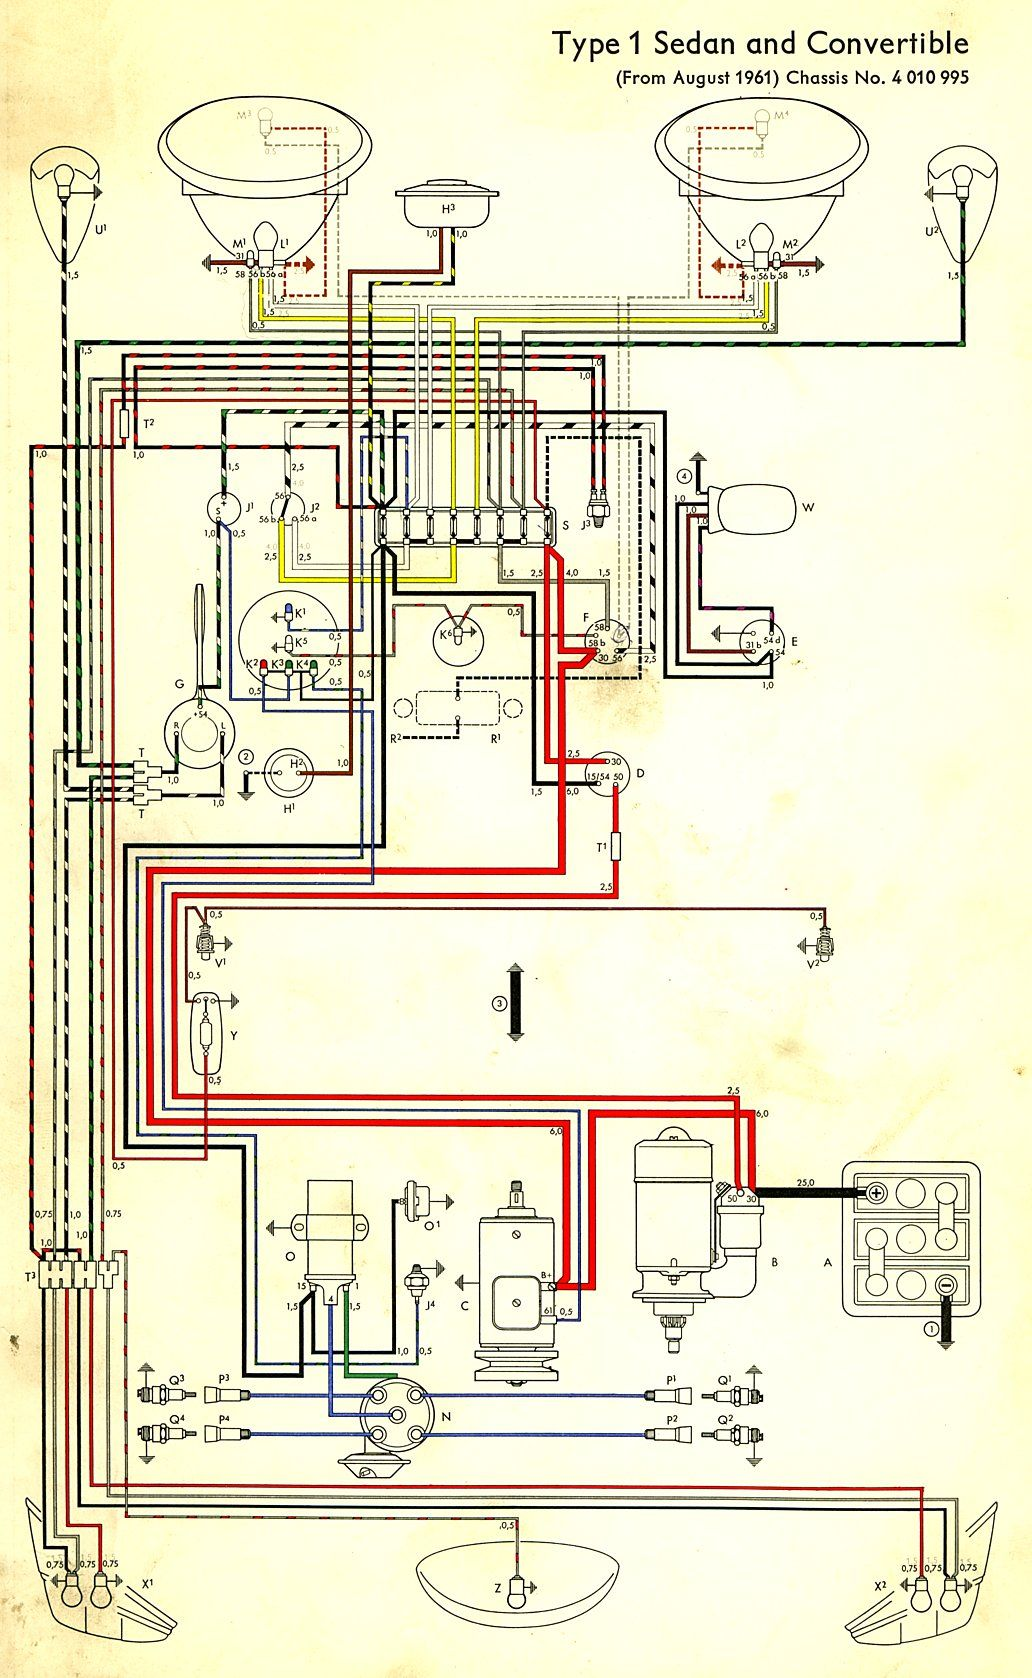 Classic Bug Diagram Facts About Wiring Honda Cl77 In Color 1964 Vw Beetle Convertible The Samba Rh Pinterest Com